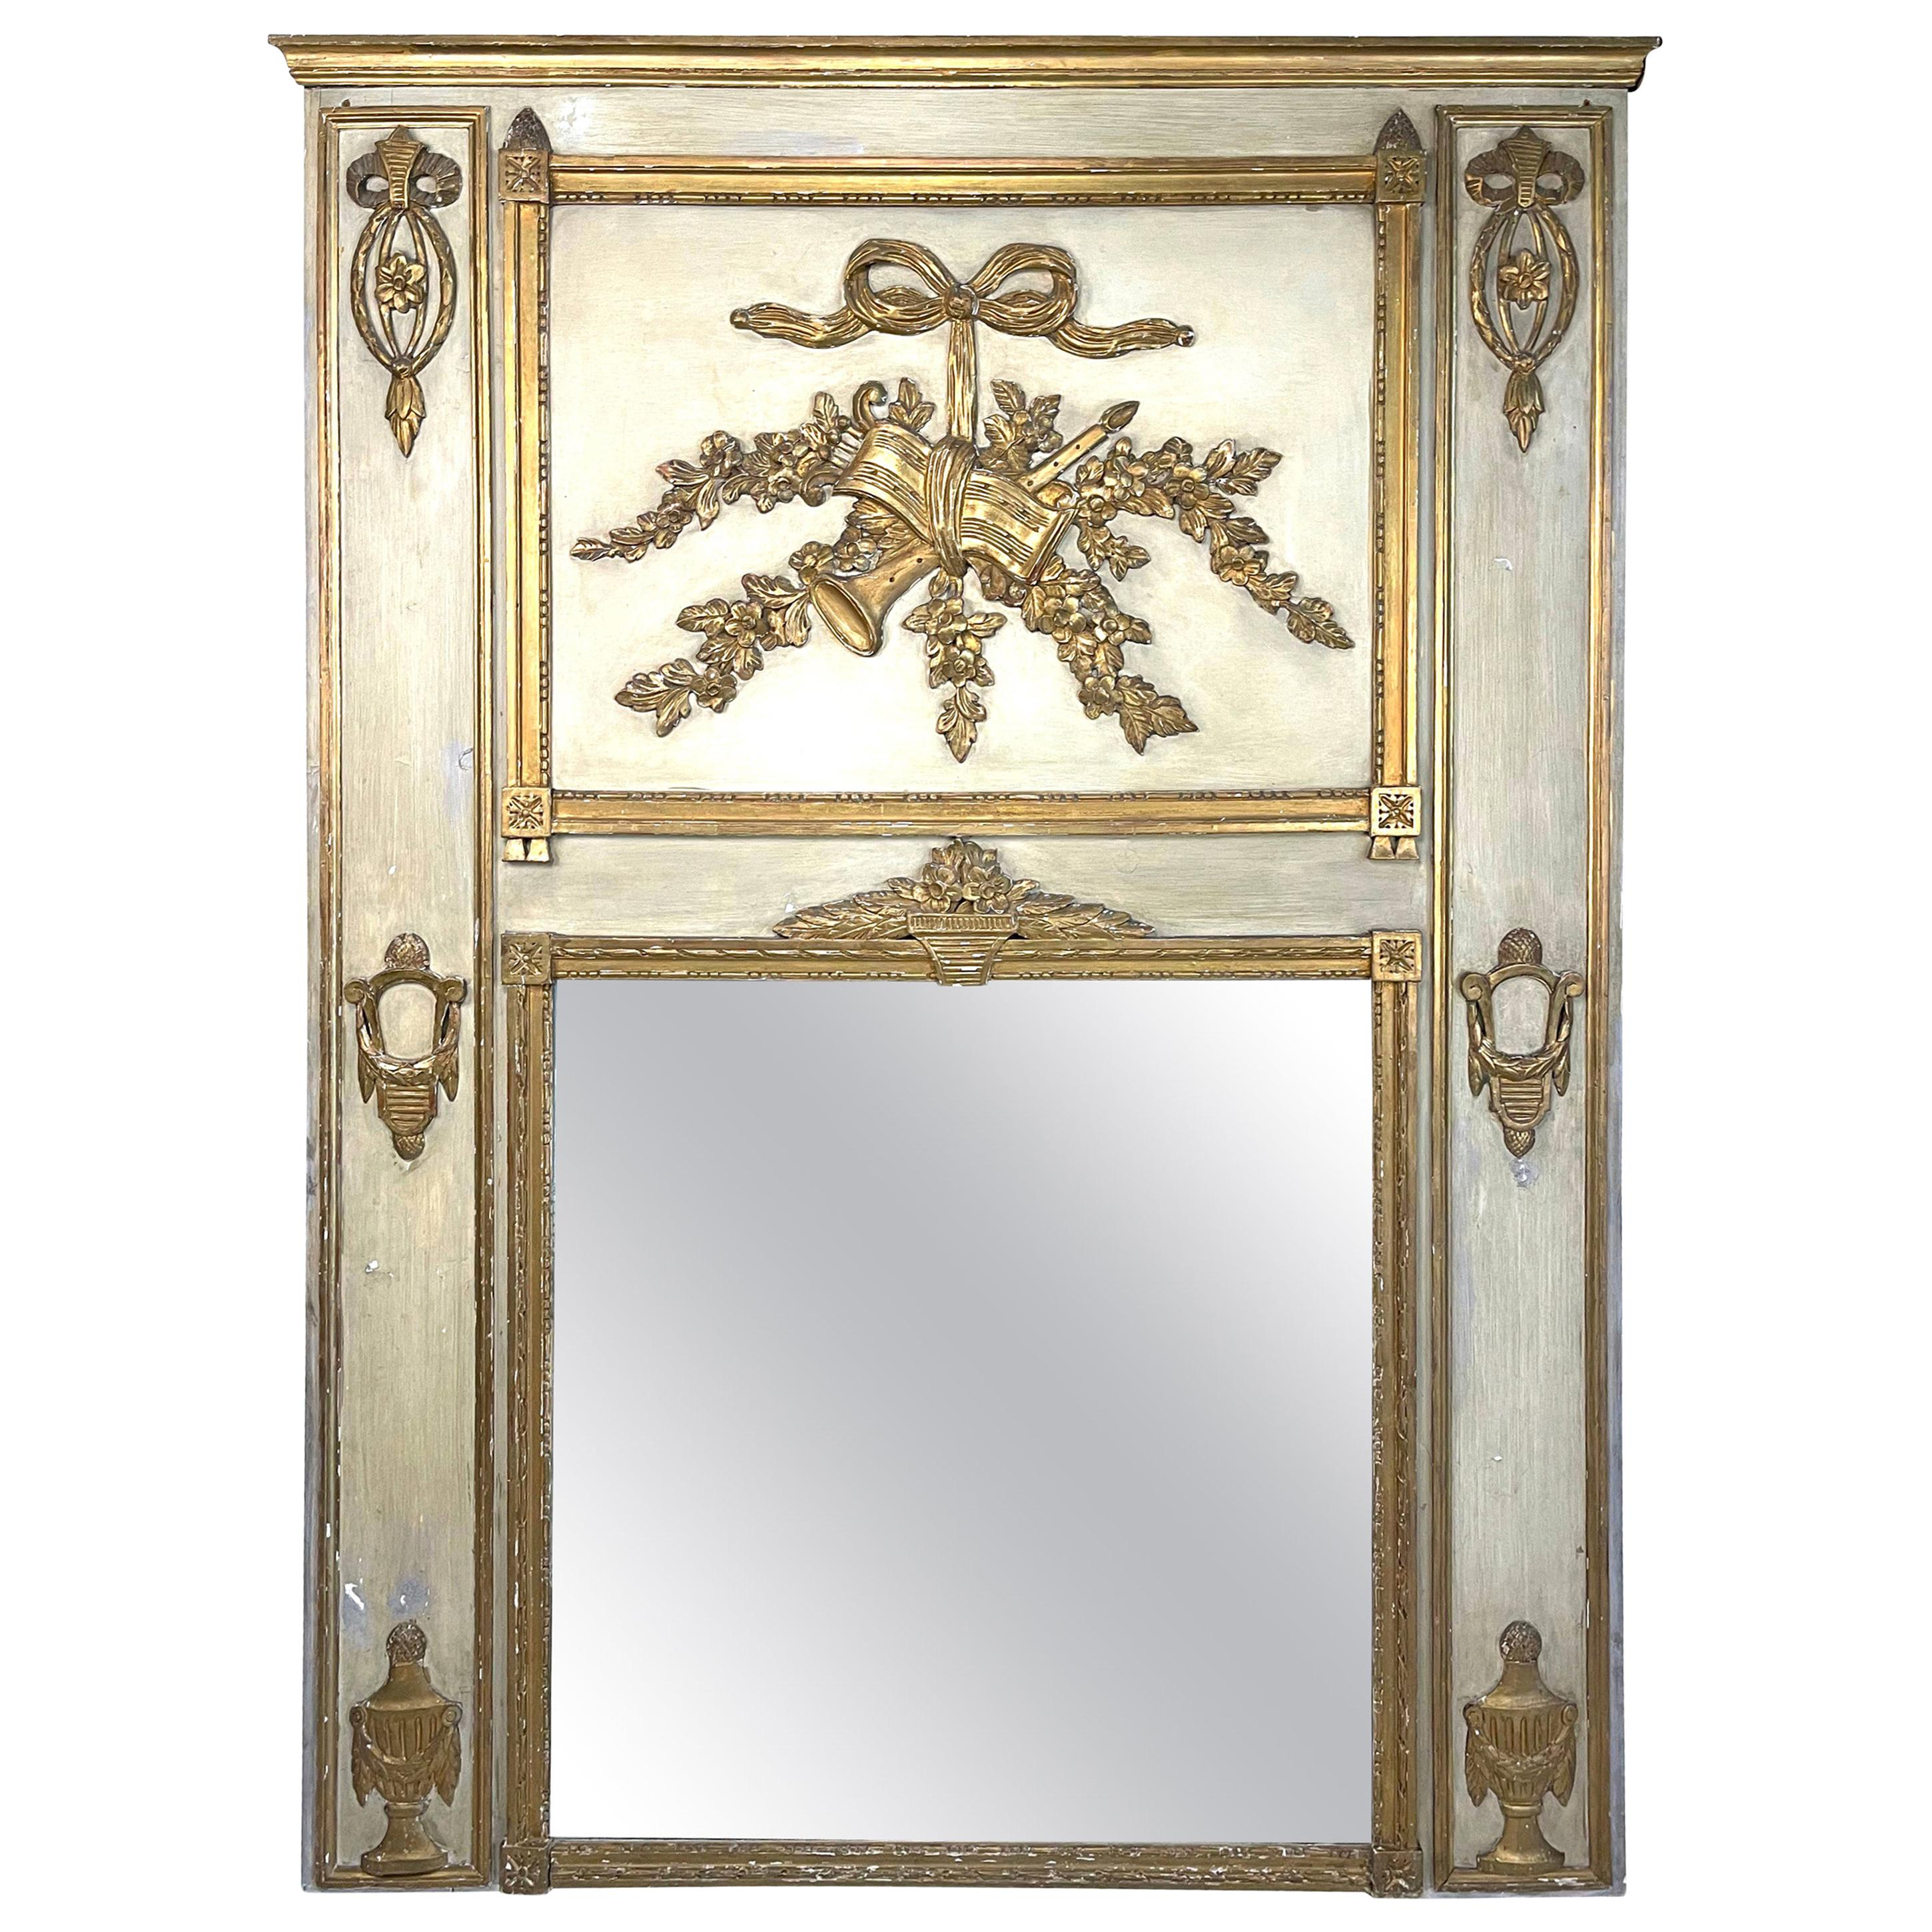 Antique French Carved White Painted Giltwood and White Trumeau Mirror